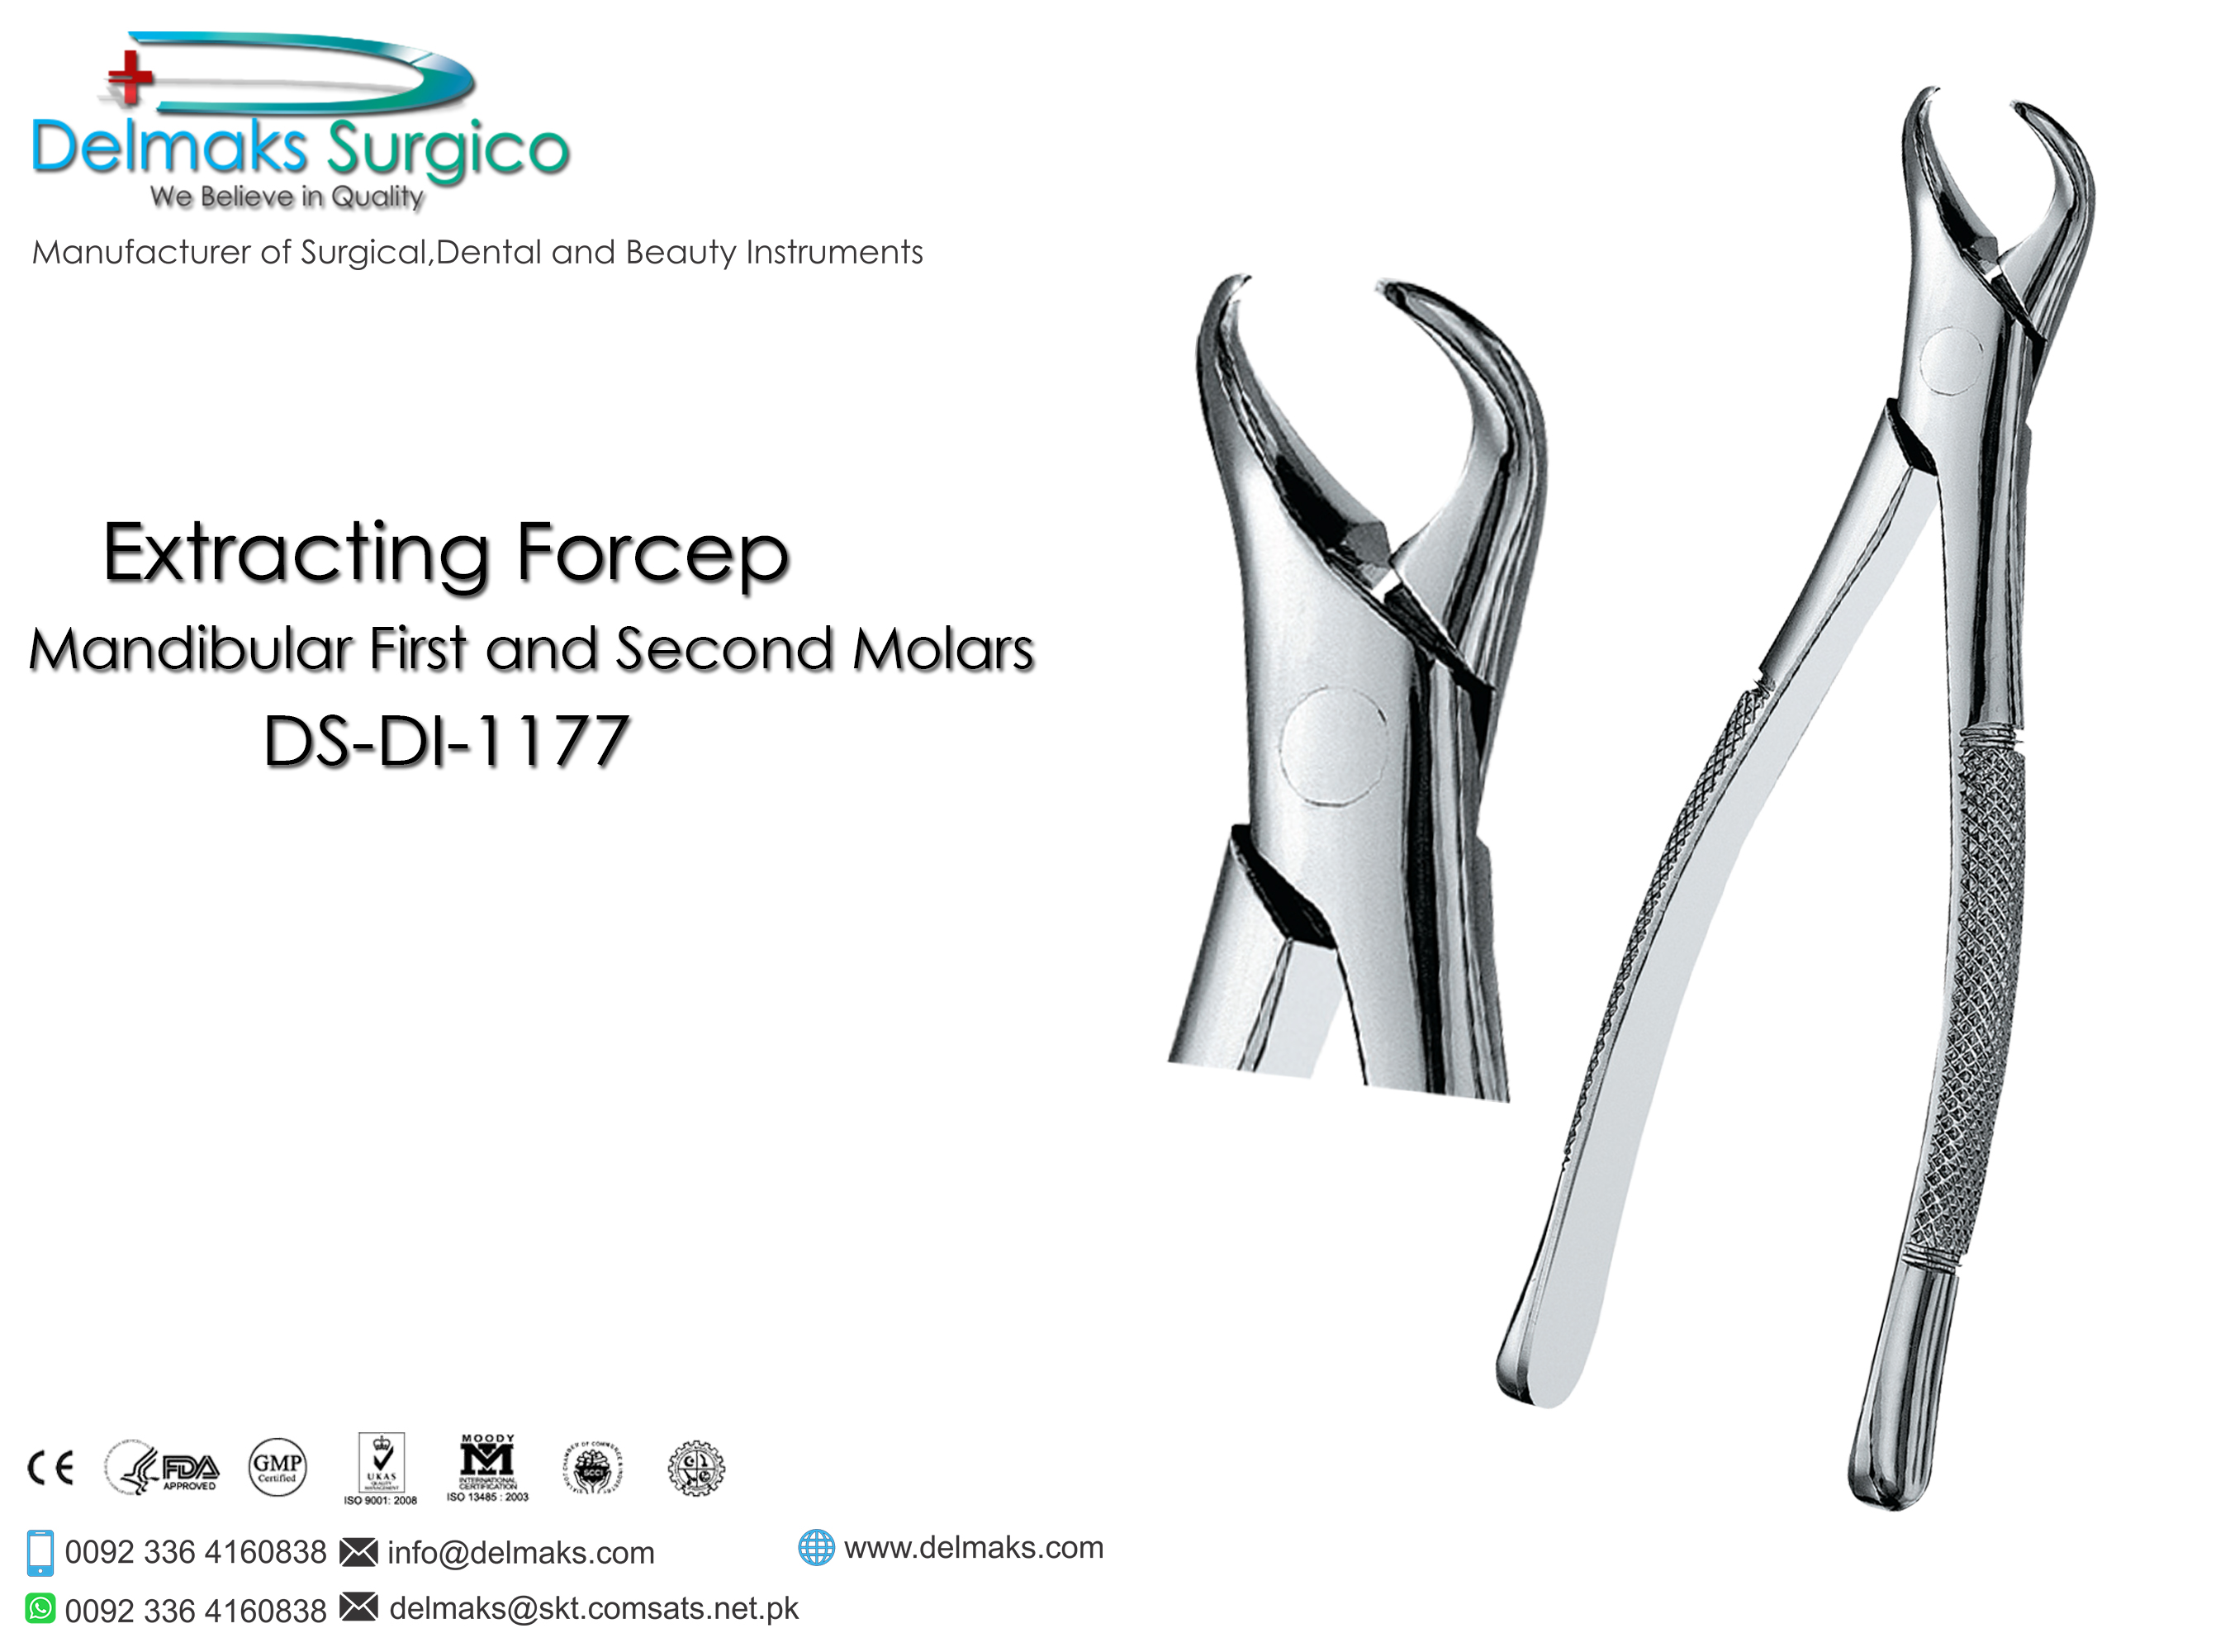 Extracting Forcep Mandibular First and Second Molars-Oral and Maxillofacial Surgery Instruments-Dental Instruments-Delmaks Surgico